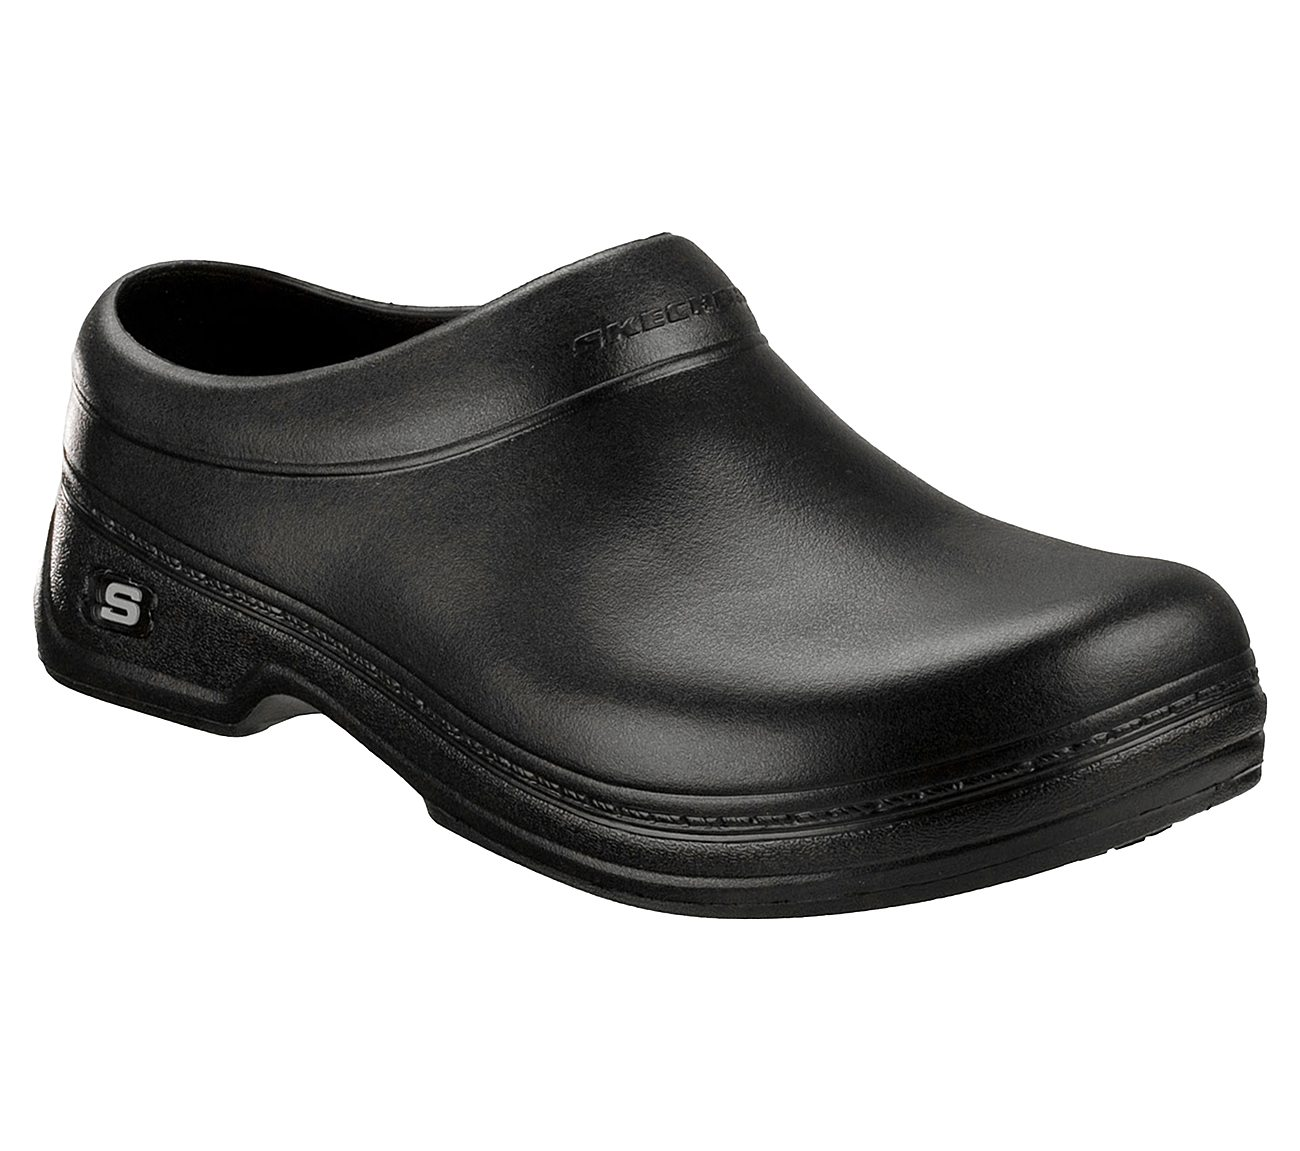 a438bb9300a Buy SKECHERS Work  Oswald - Balder Work Shoes only  44.00